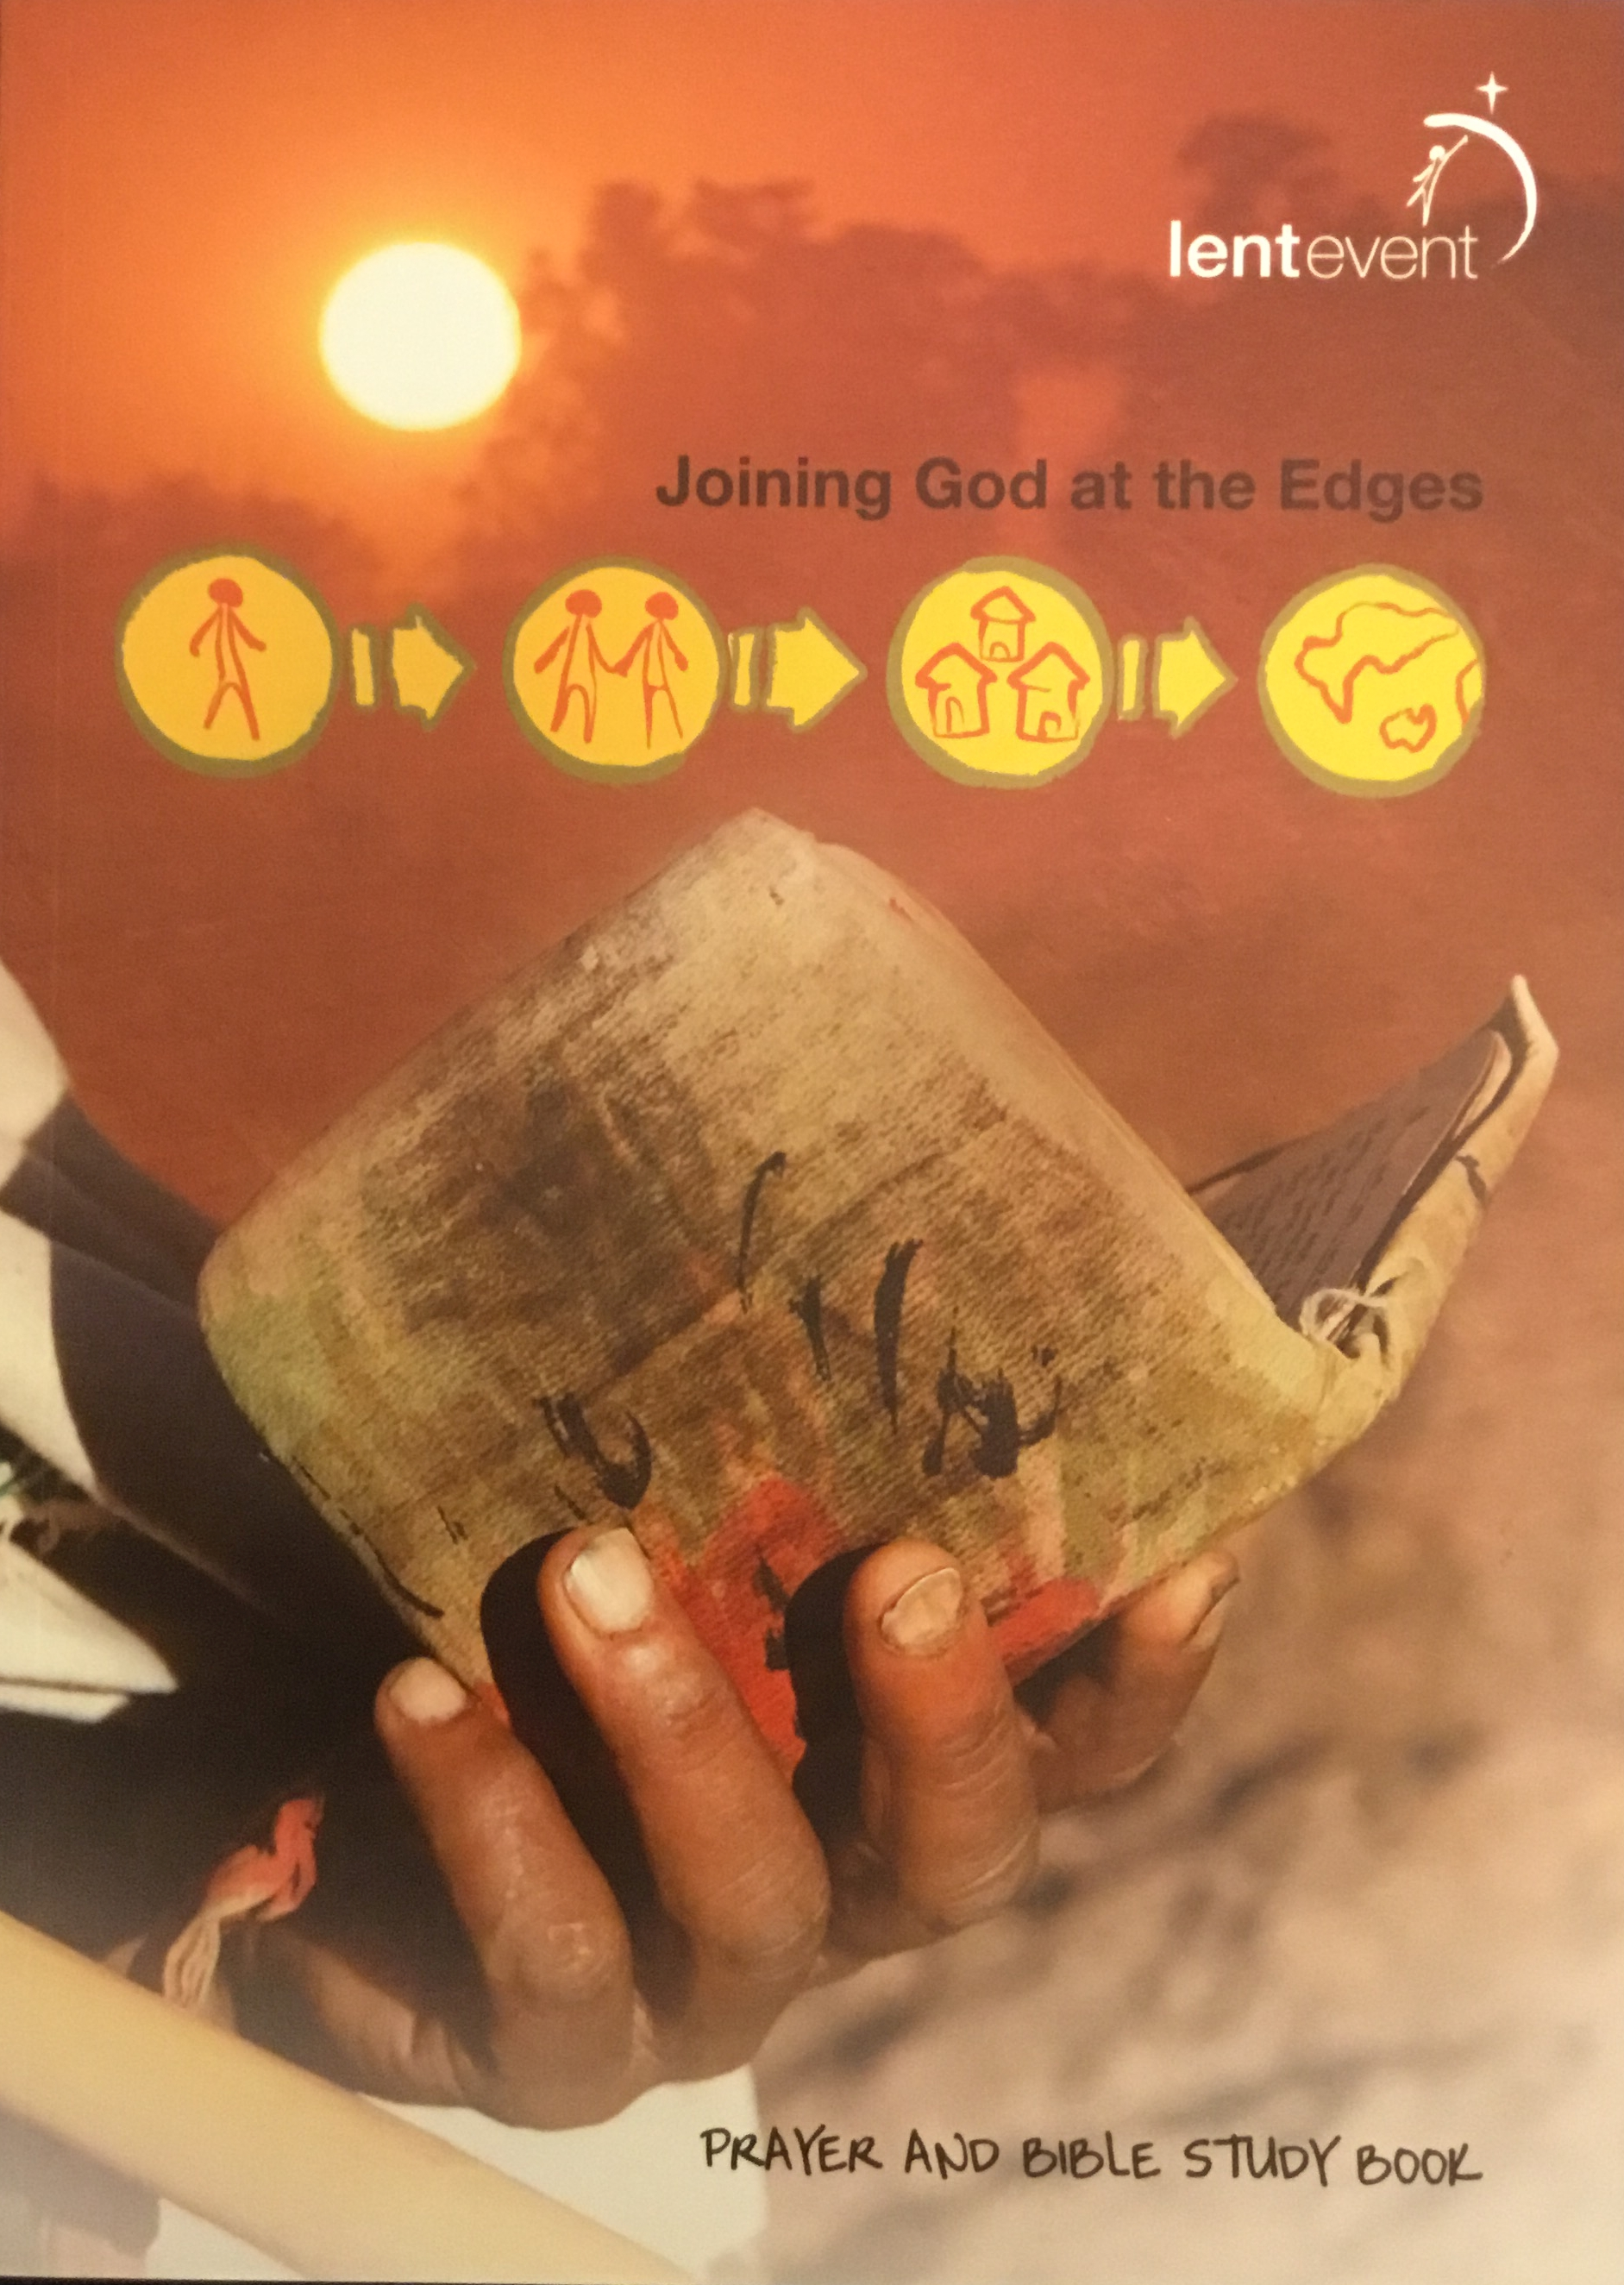 Joining God at the edges